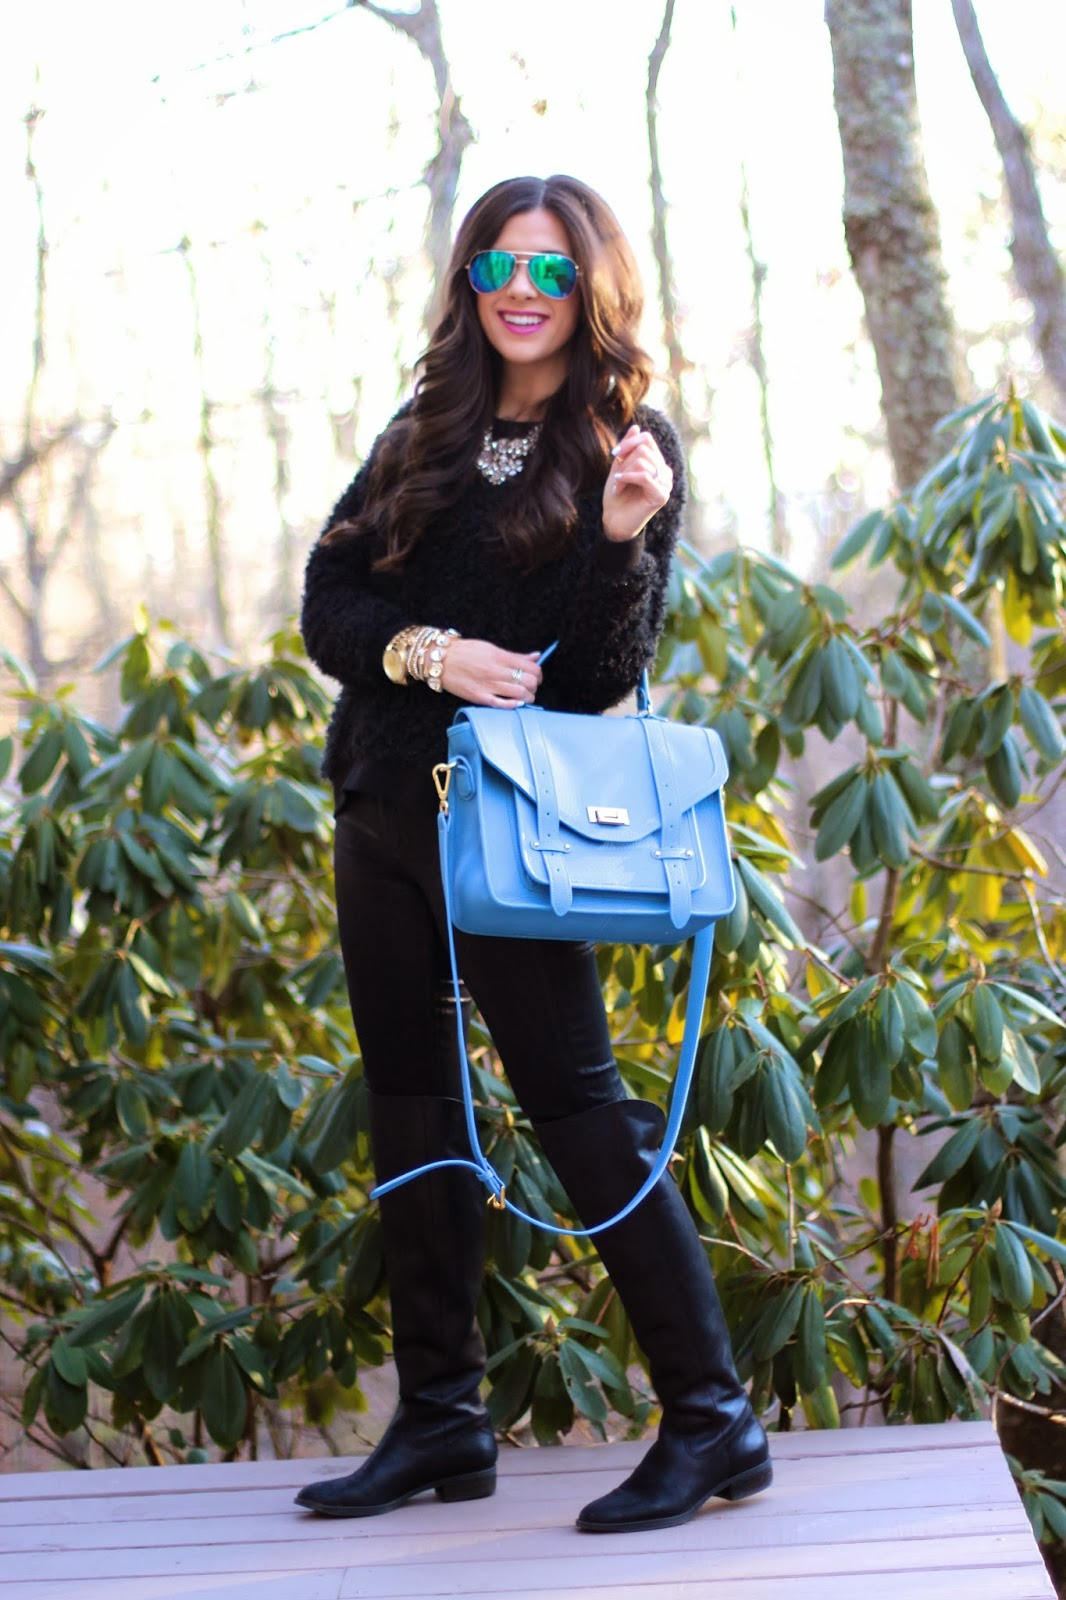 www.thesweetestthingblog.com, Emily Gemma, Faux Leather Leggings, Fuzzy Black Sweater, Mirrored Blue Aviators, Mirrored Blue RayBans, Sole Society boots, Over the knee boots, MAC up the amp, Gigi New York, Gigi New York Hayden Satchel, Spring Gigi NY Haydon Satchel, Michael Kors Runway Watch, David Yurman ring, Crystal Flower Necklace, Jcrew inspired crystal necklace